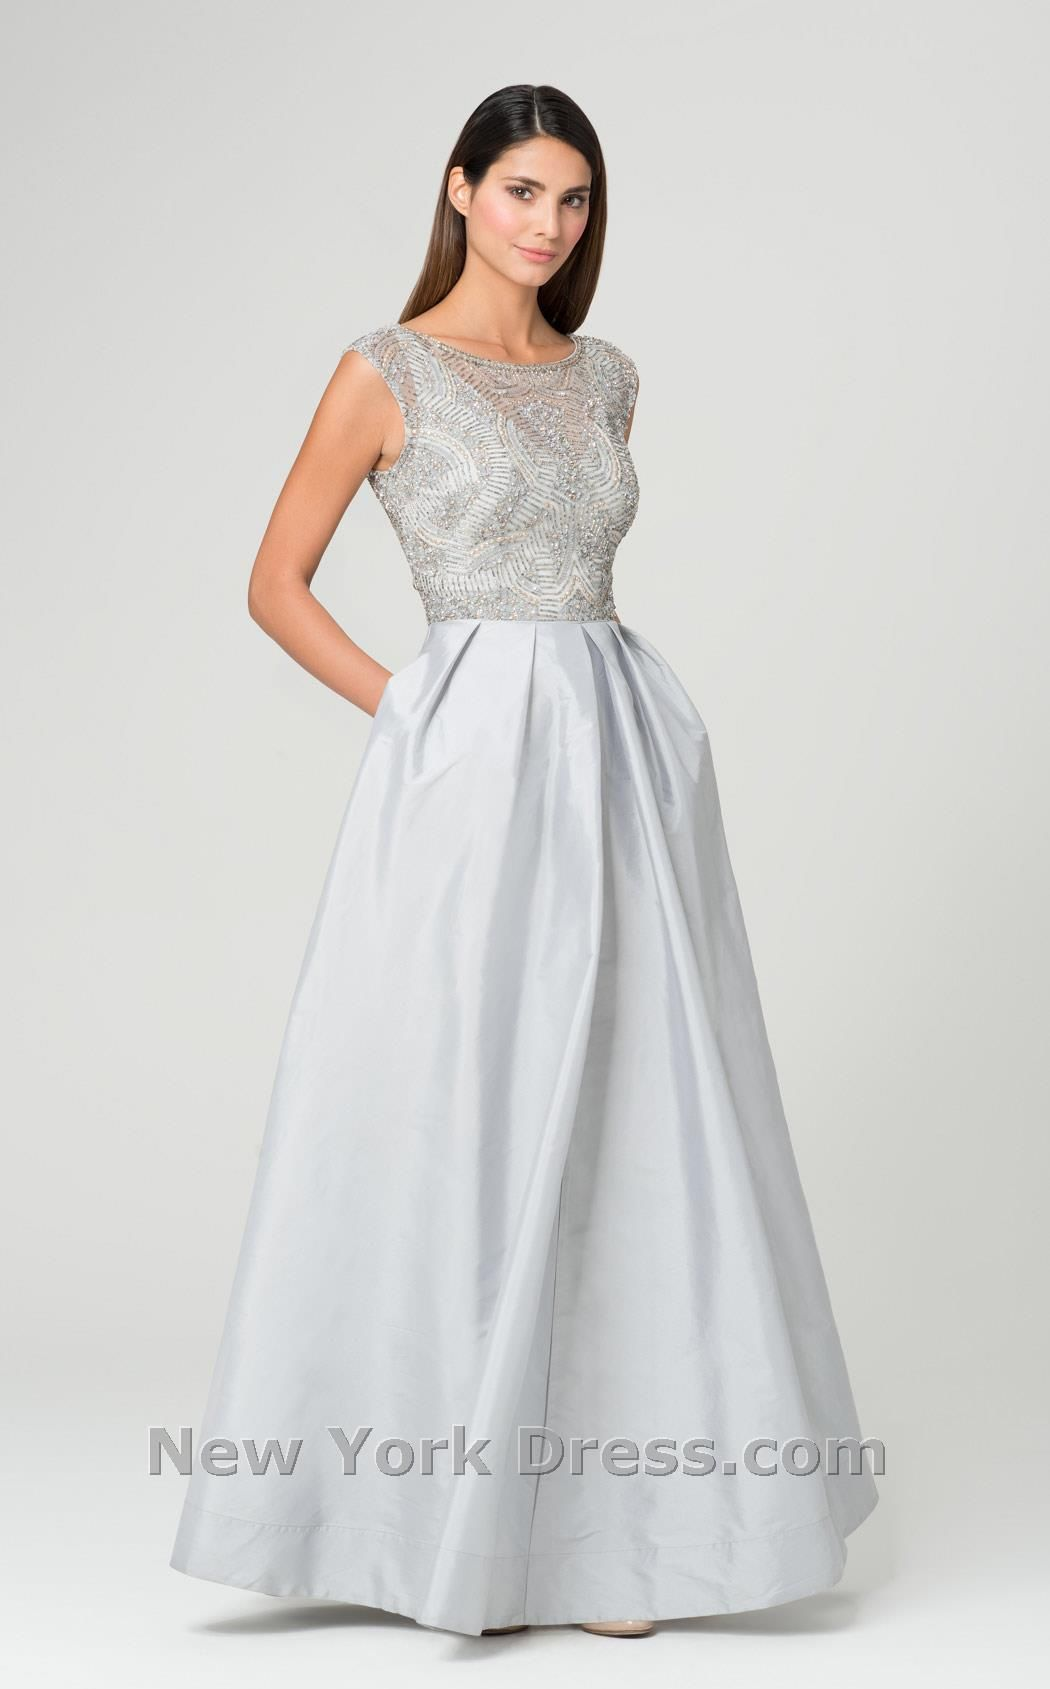 Aidan Mattox 463820 Dress - NewYorkDress.com | Prom | Pinterest